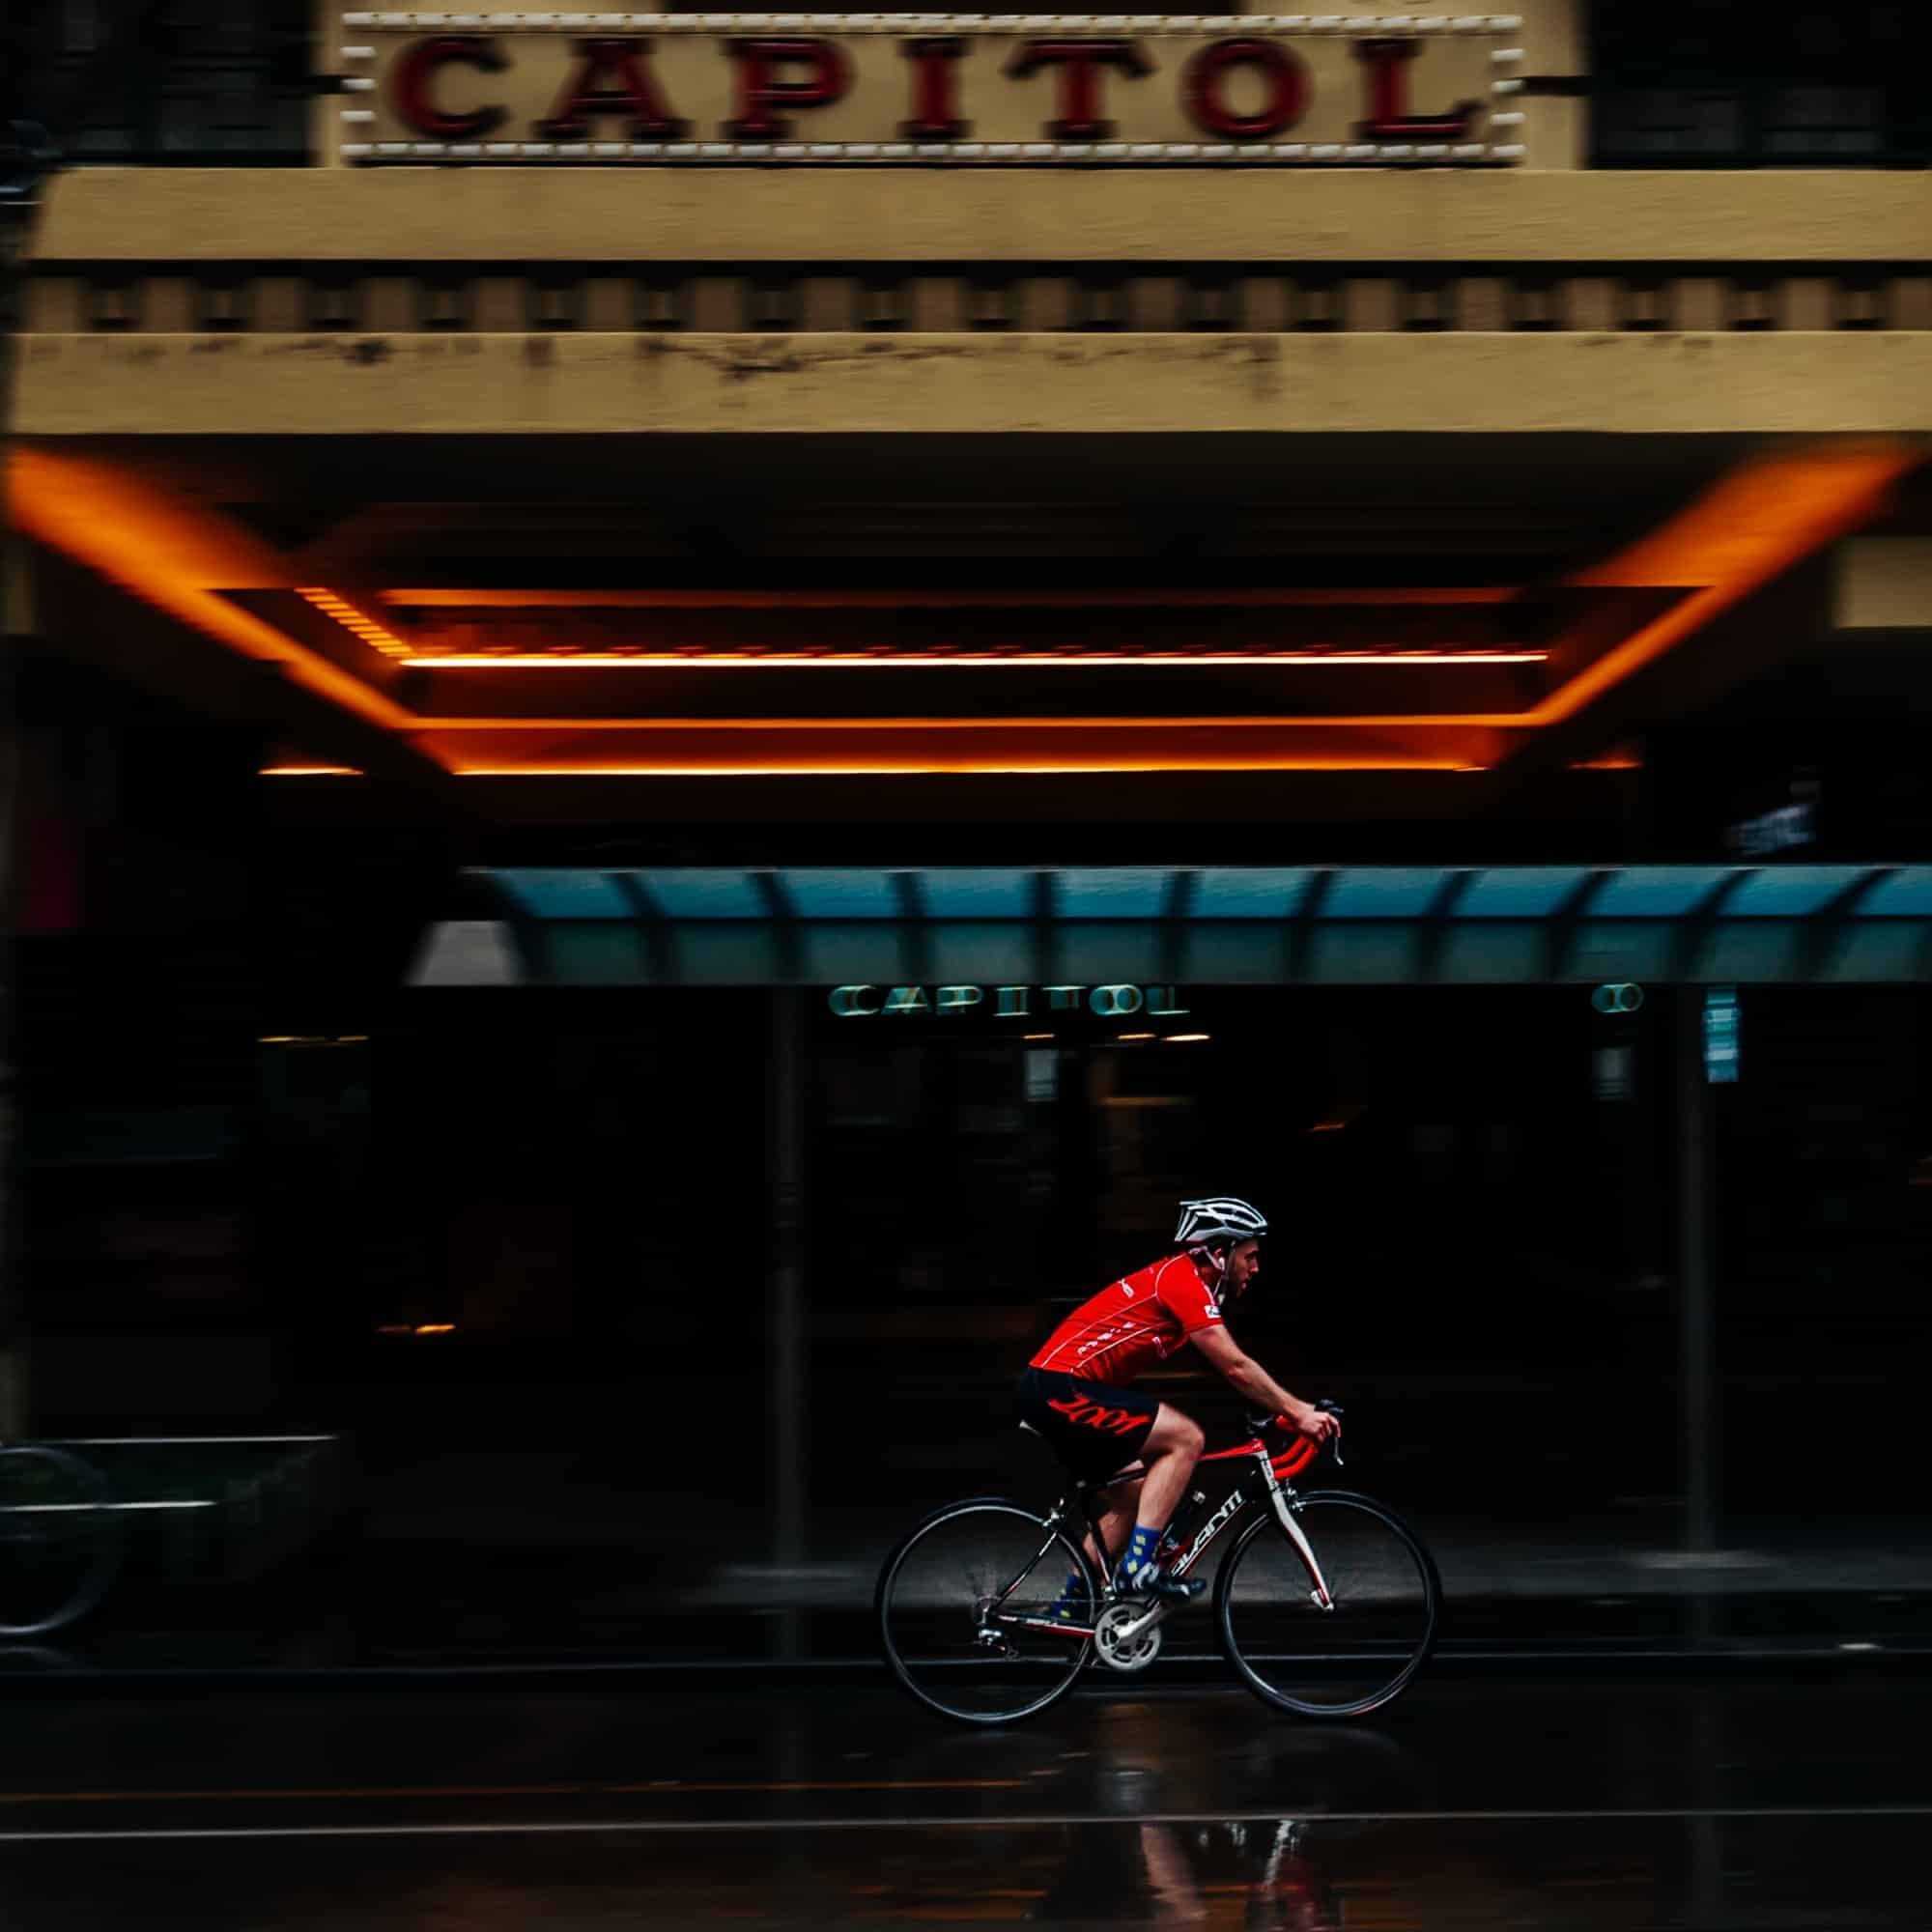 A bicyclist is seen braving the rain in Swanston Street during COVID-19 in Melbourne, Australia. Victoria has recorded 14 COVID related deaths including a 20 year old, marking the youngest to die from Coronavirus in Australia, and an additional 372 new cases overnight.